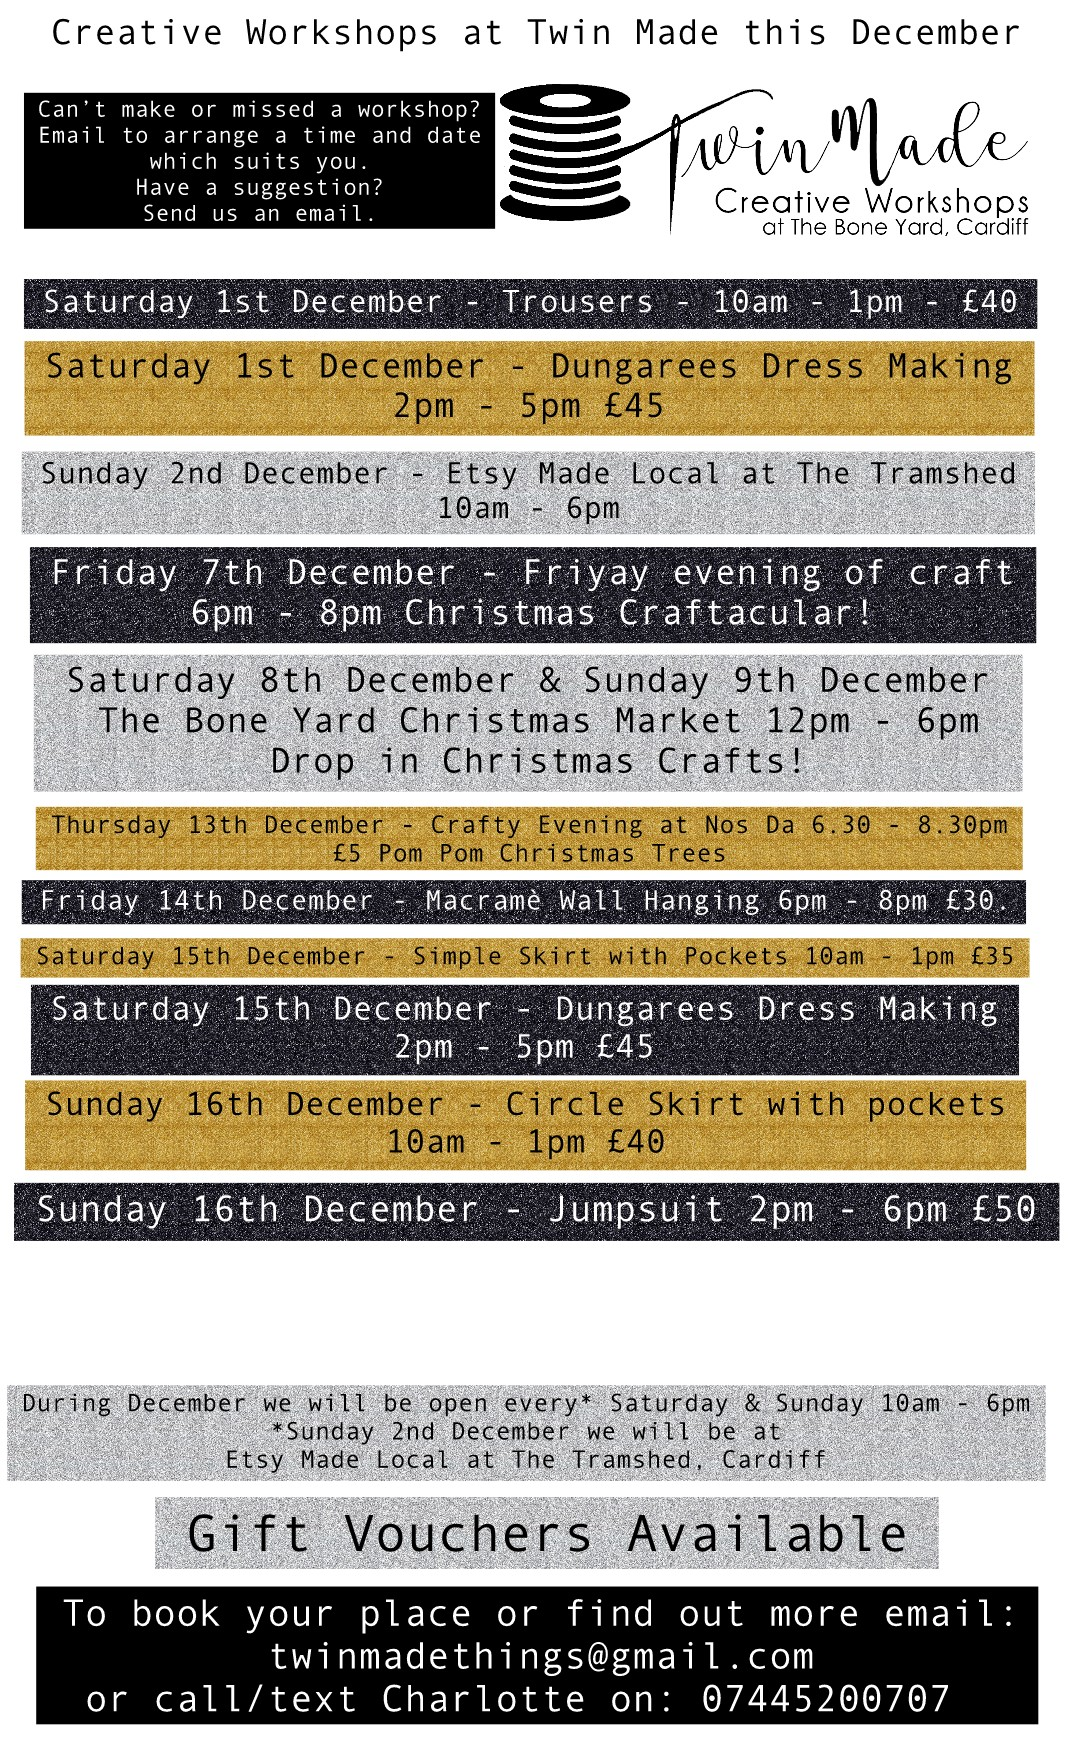 Creative Workshops this December at Twin Made